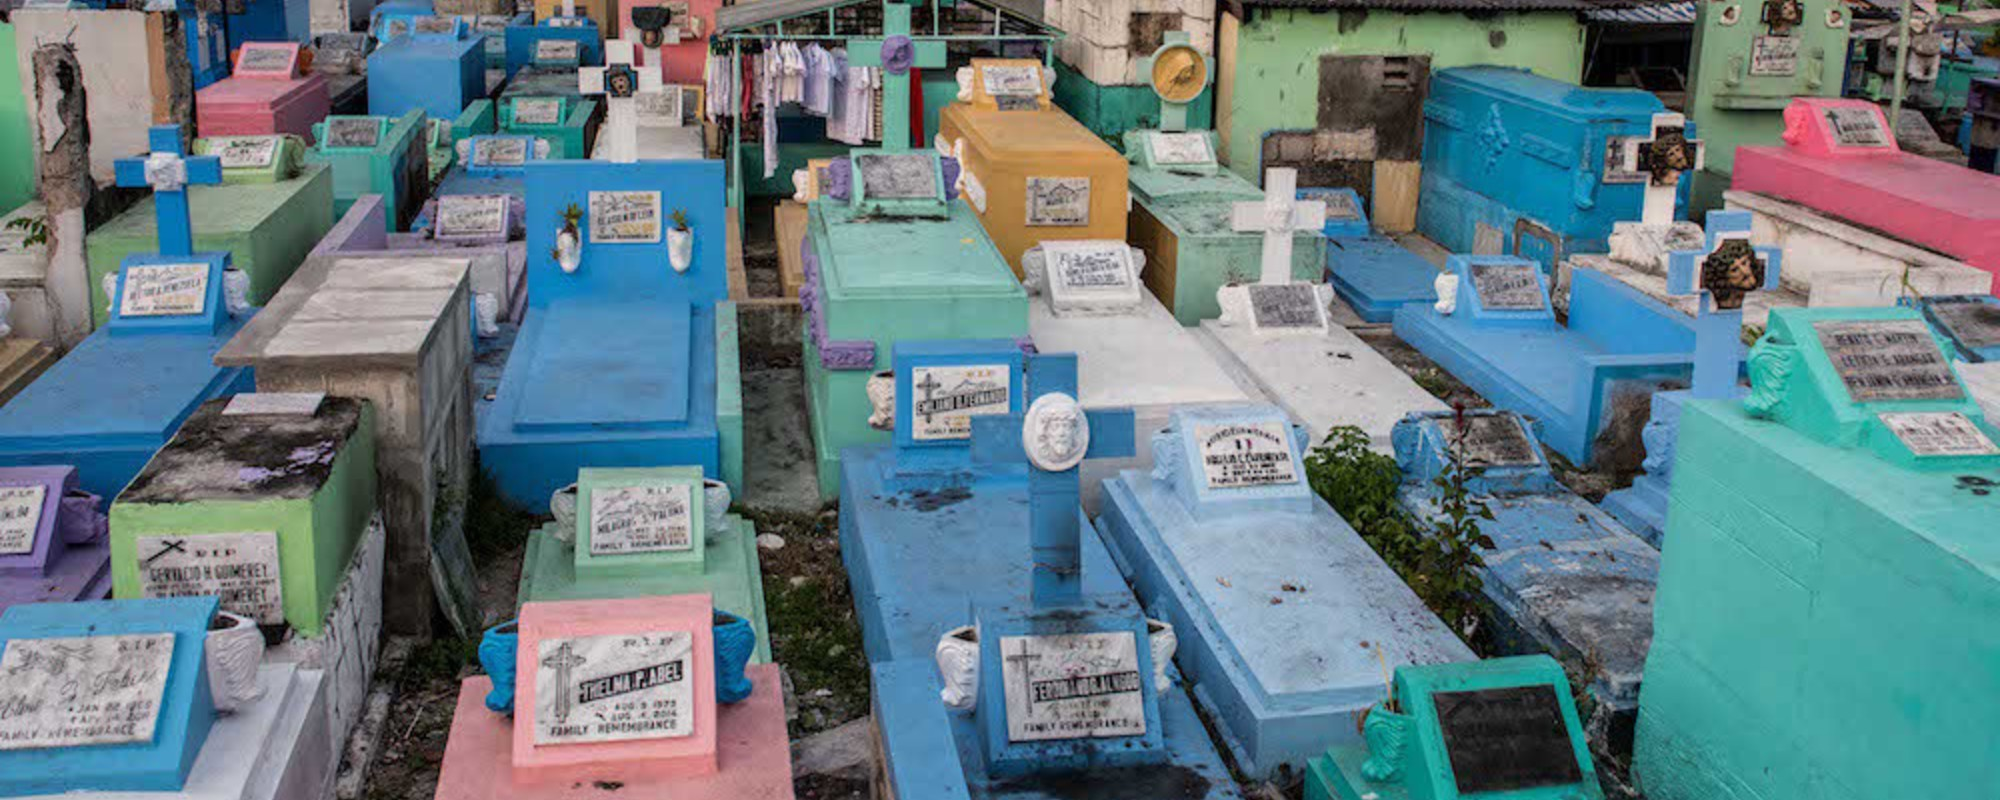 The Kiwi Photographer Who Lived in a Filipino Graveyard